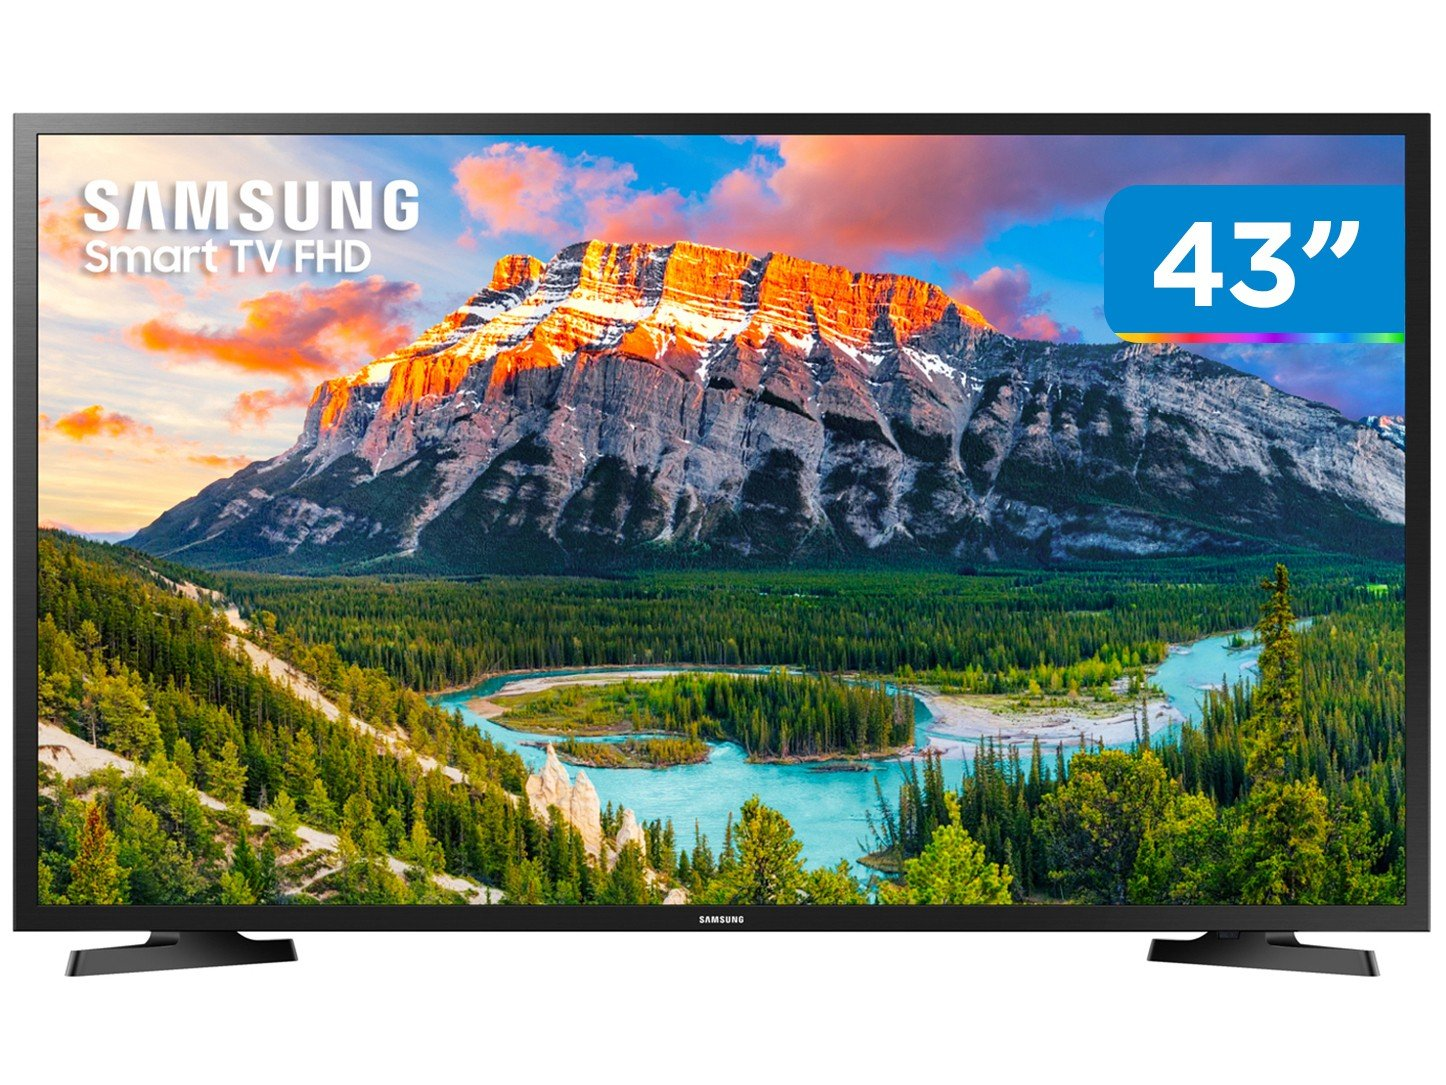 "Smart TV LED 43"" Full HD Samsung 43J5290 com Wide Color Enhancer Plus, Espelhamento de Tela, Wi-Fi, Dolby Digital Plus, HDMI e USB"